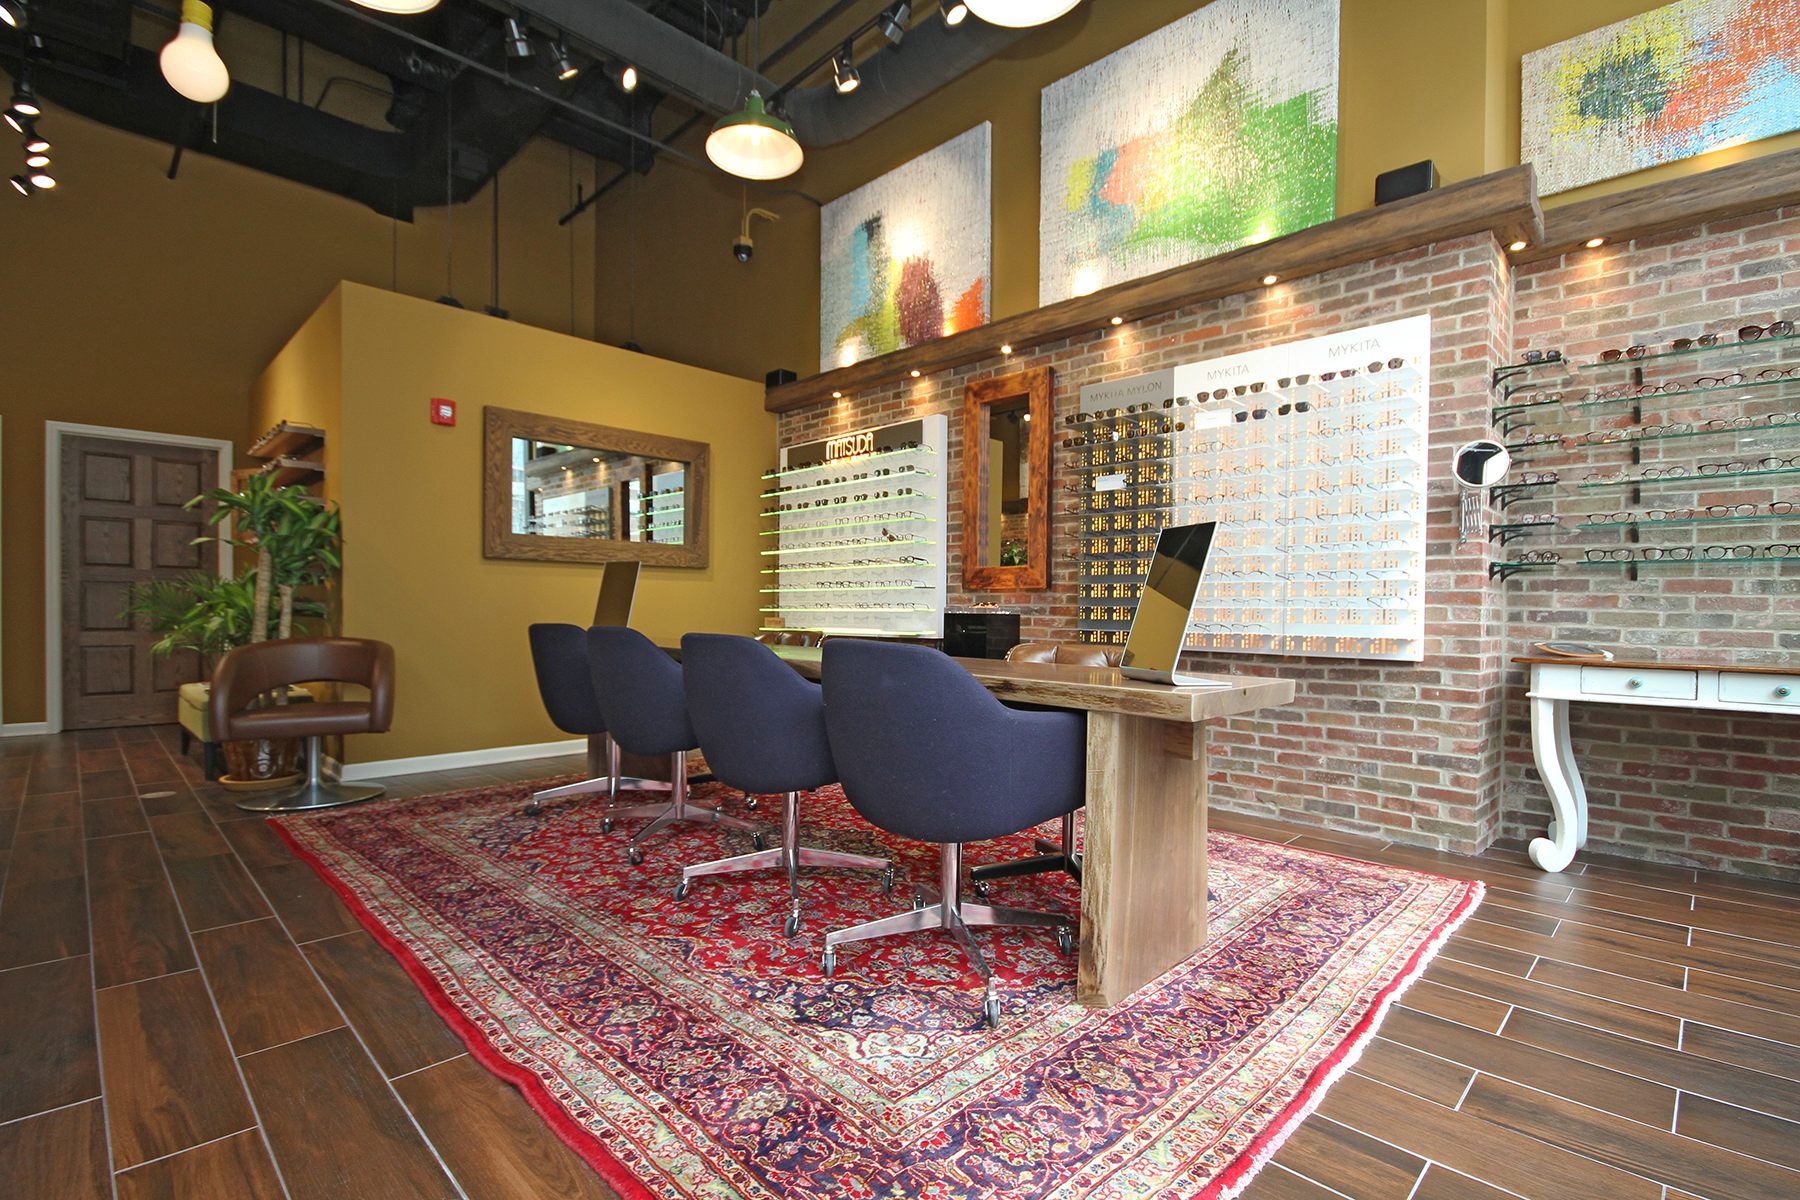 Luxury Eyesight Chicago Boutique Image 3